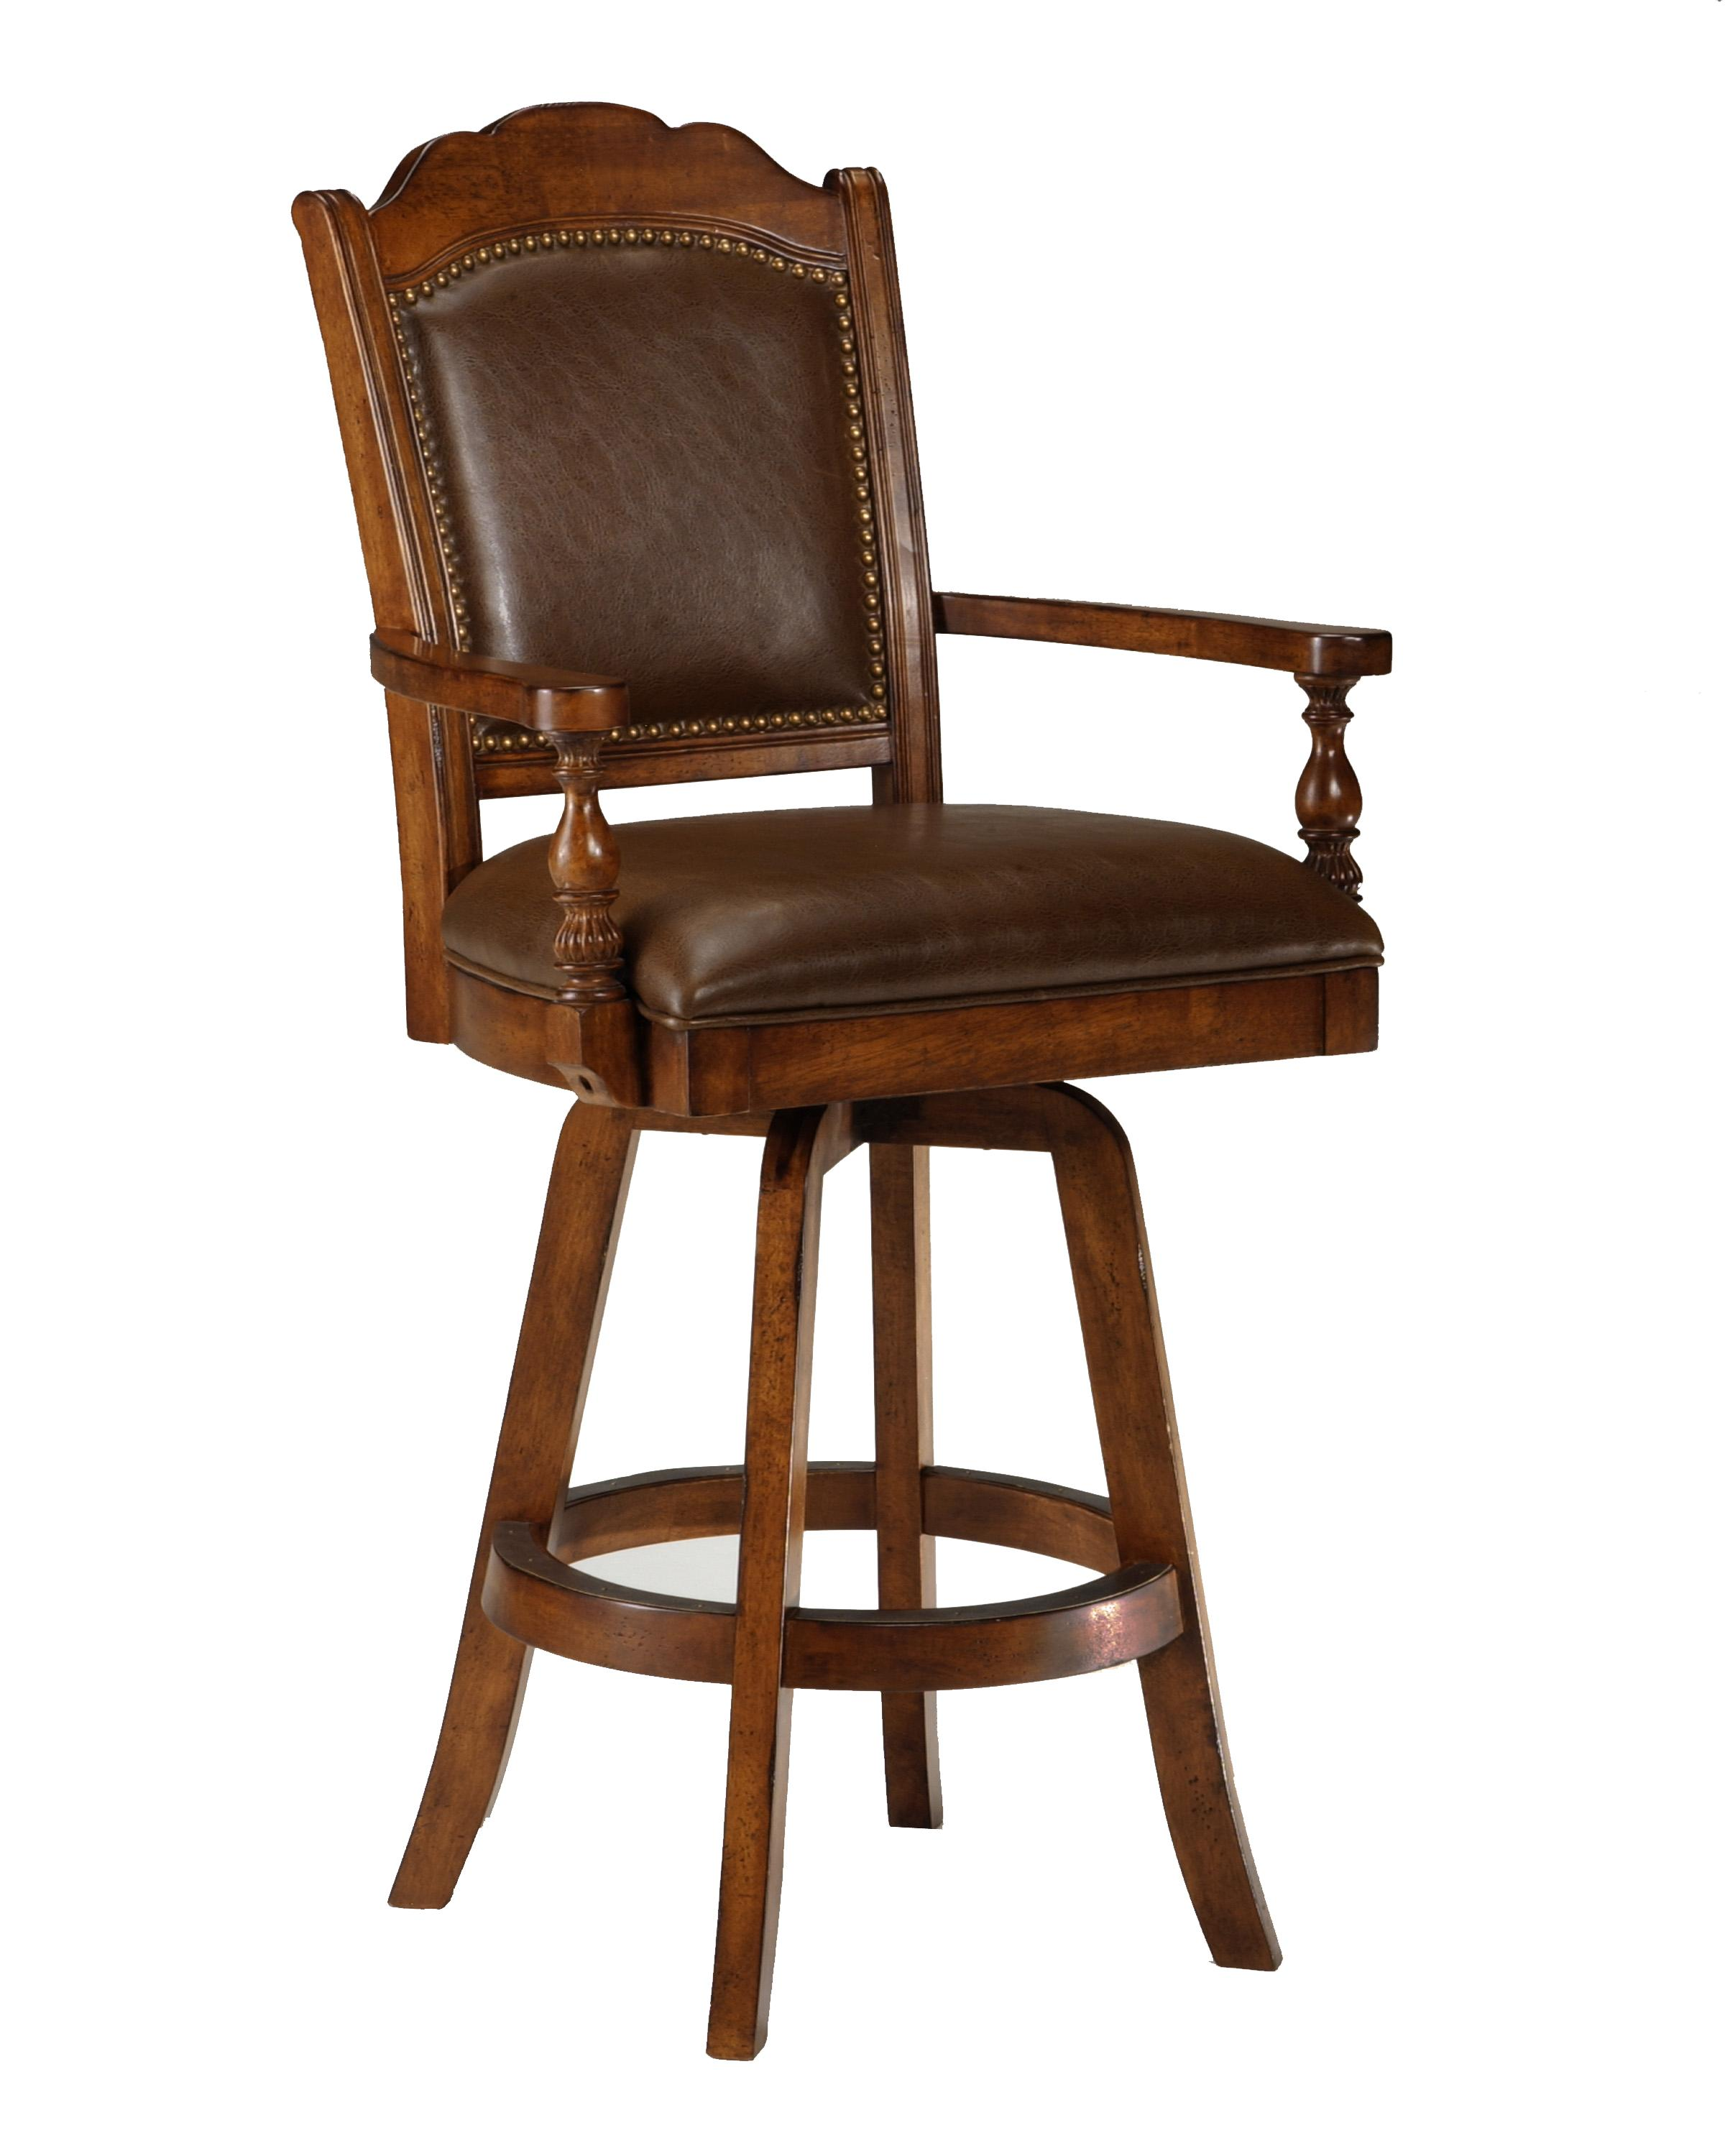 Hillsdale Game Stools & Chairs Naussa Swivel Leather Game Bar Stool - Item Number: 6060-830